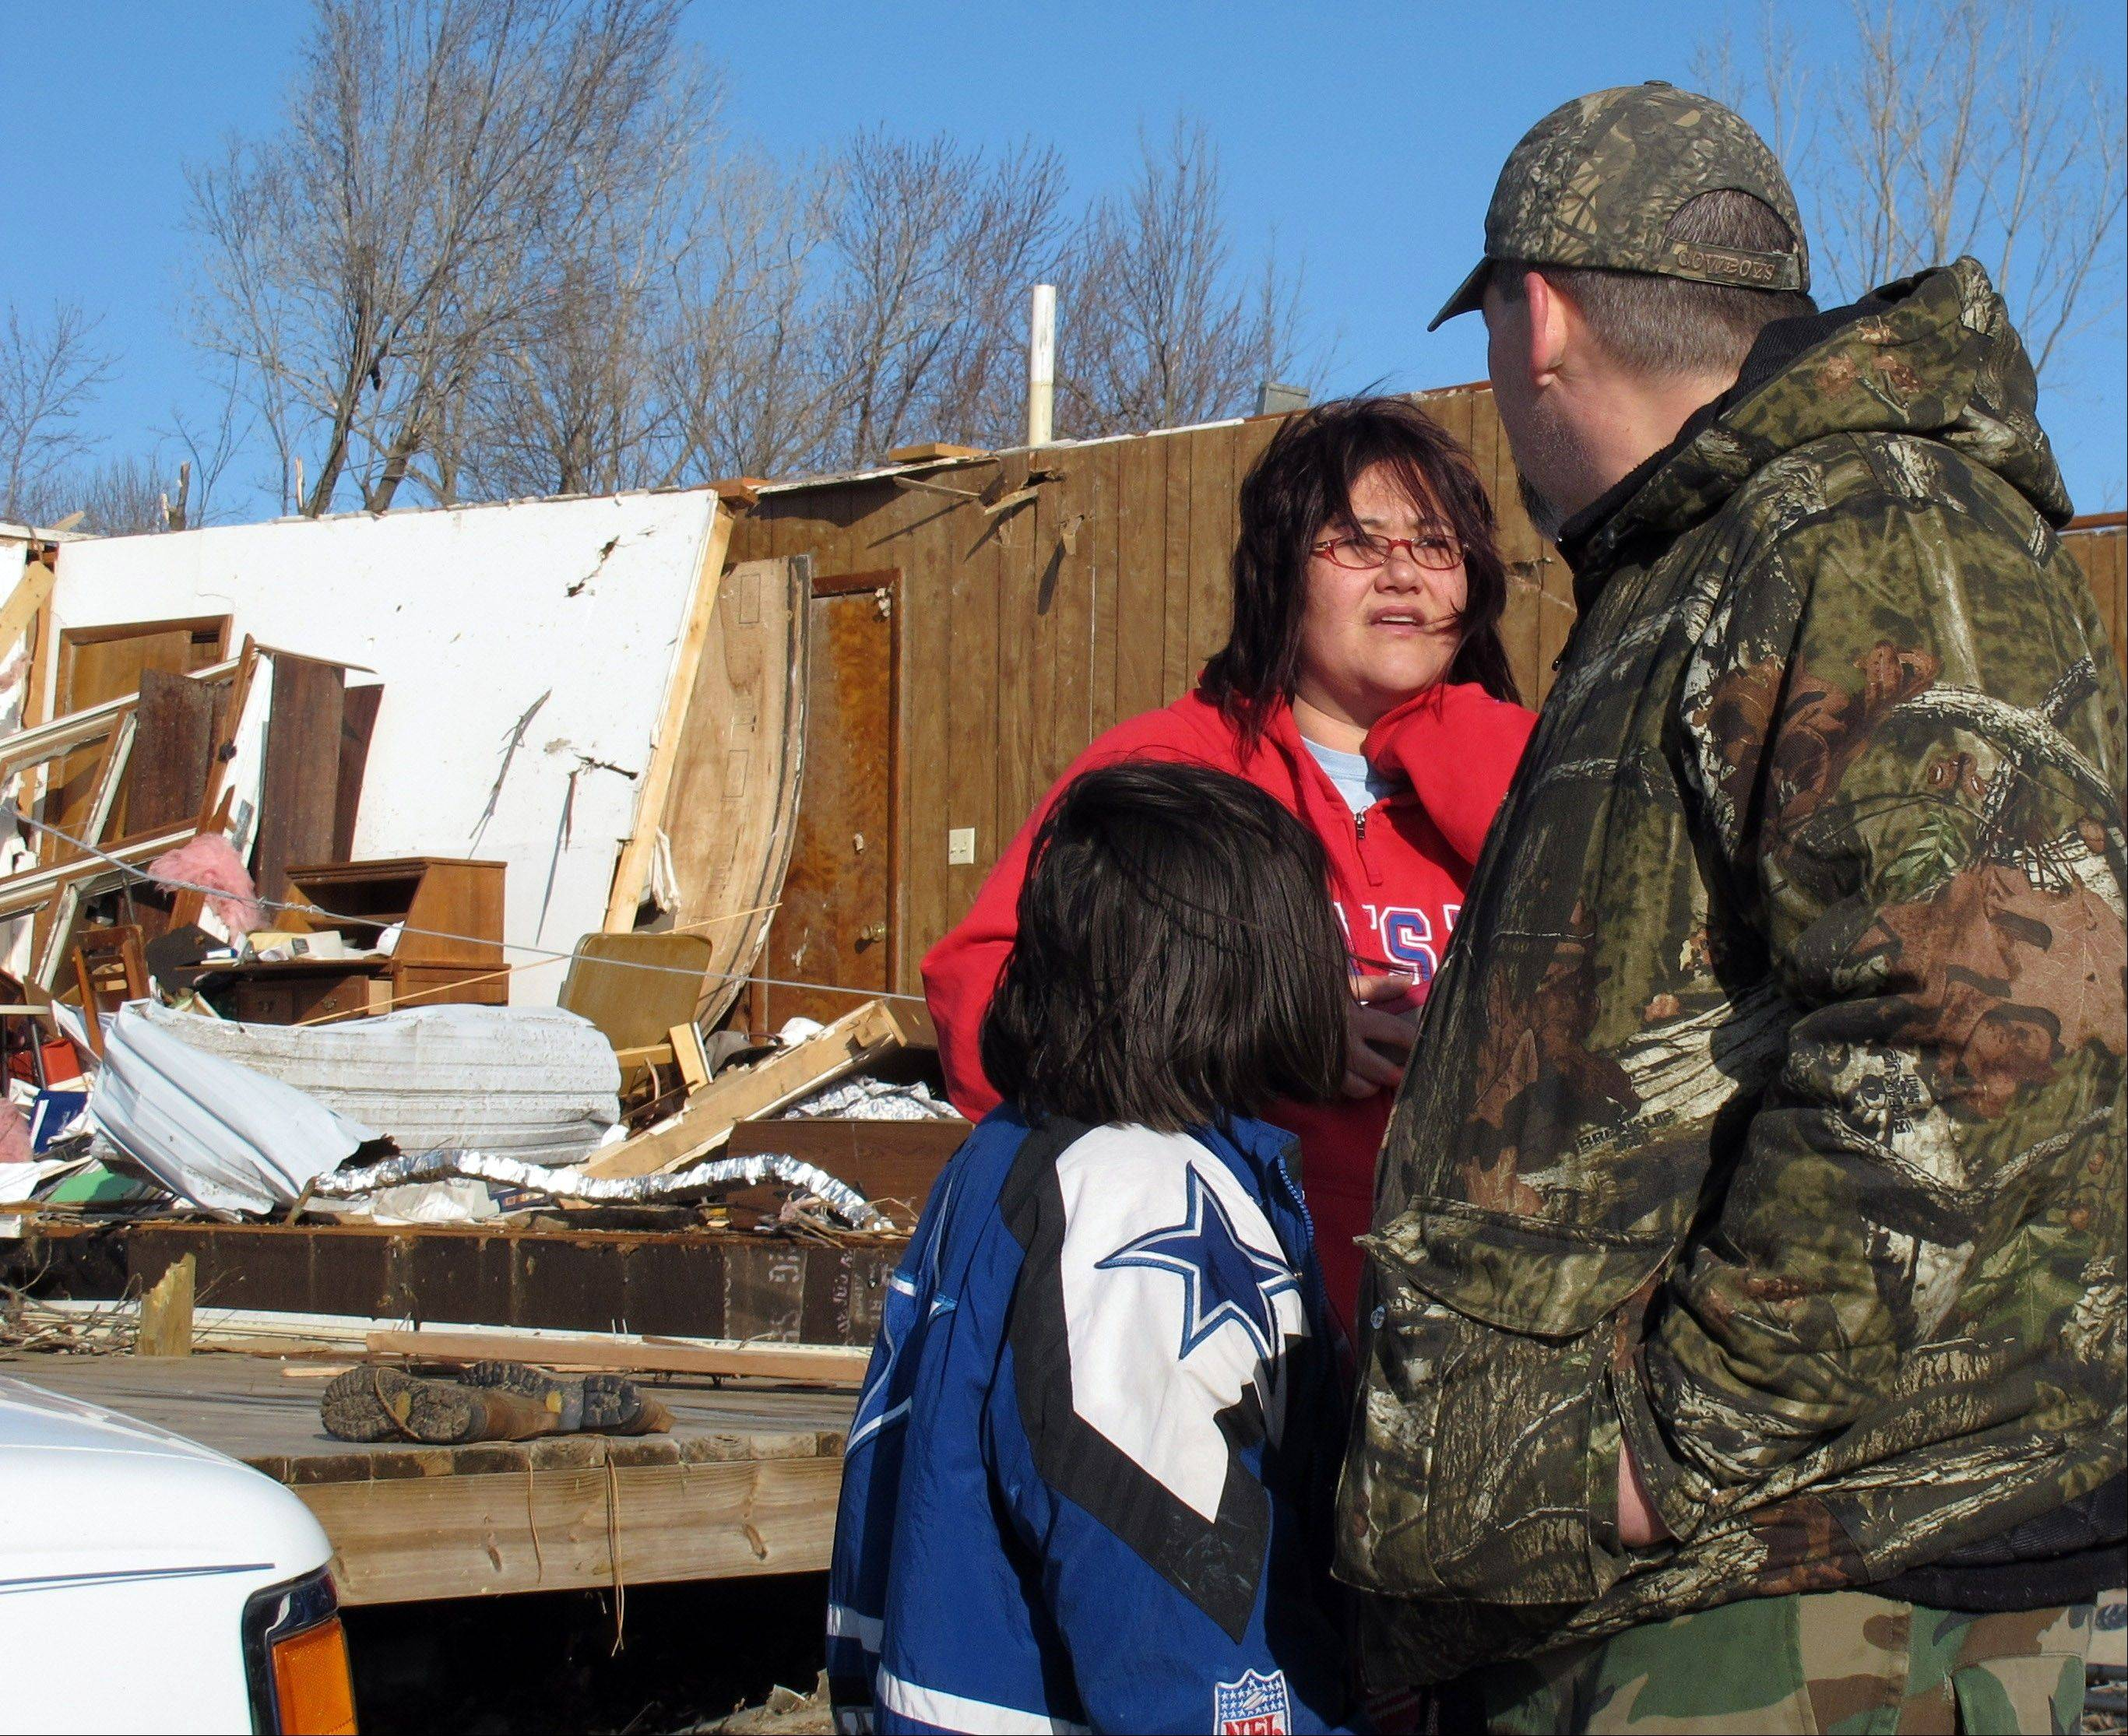 Tammy Woodyard, center, talks to neighbor Grant Hill, right, and his daughter, Talla, about the tornado damage to her father's home behind her, Wednesday, Feb. 29, 2012, in Harveyville, Kan.